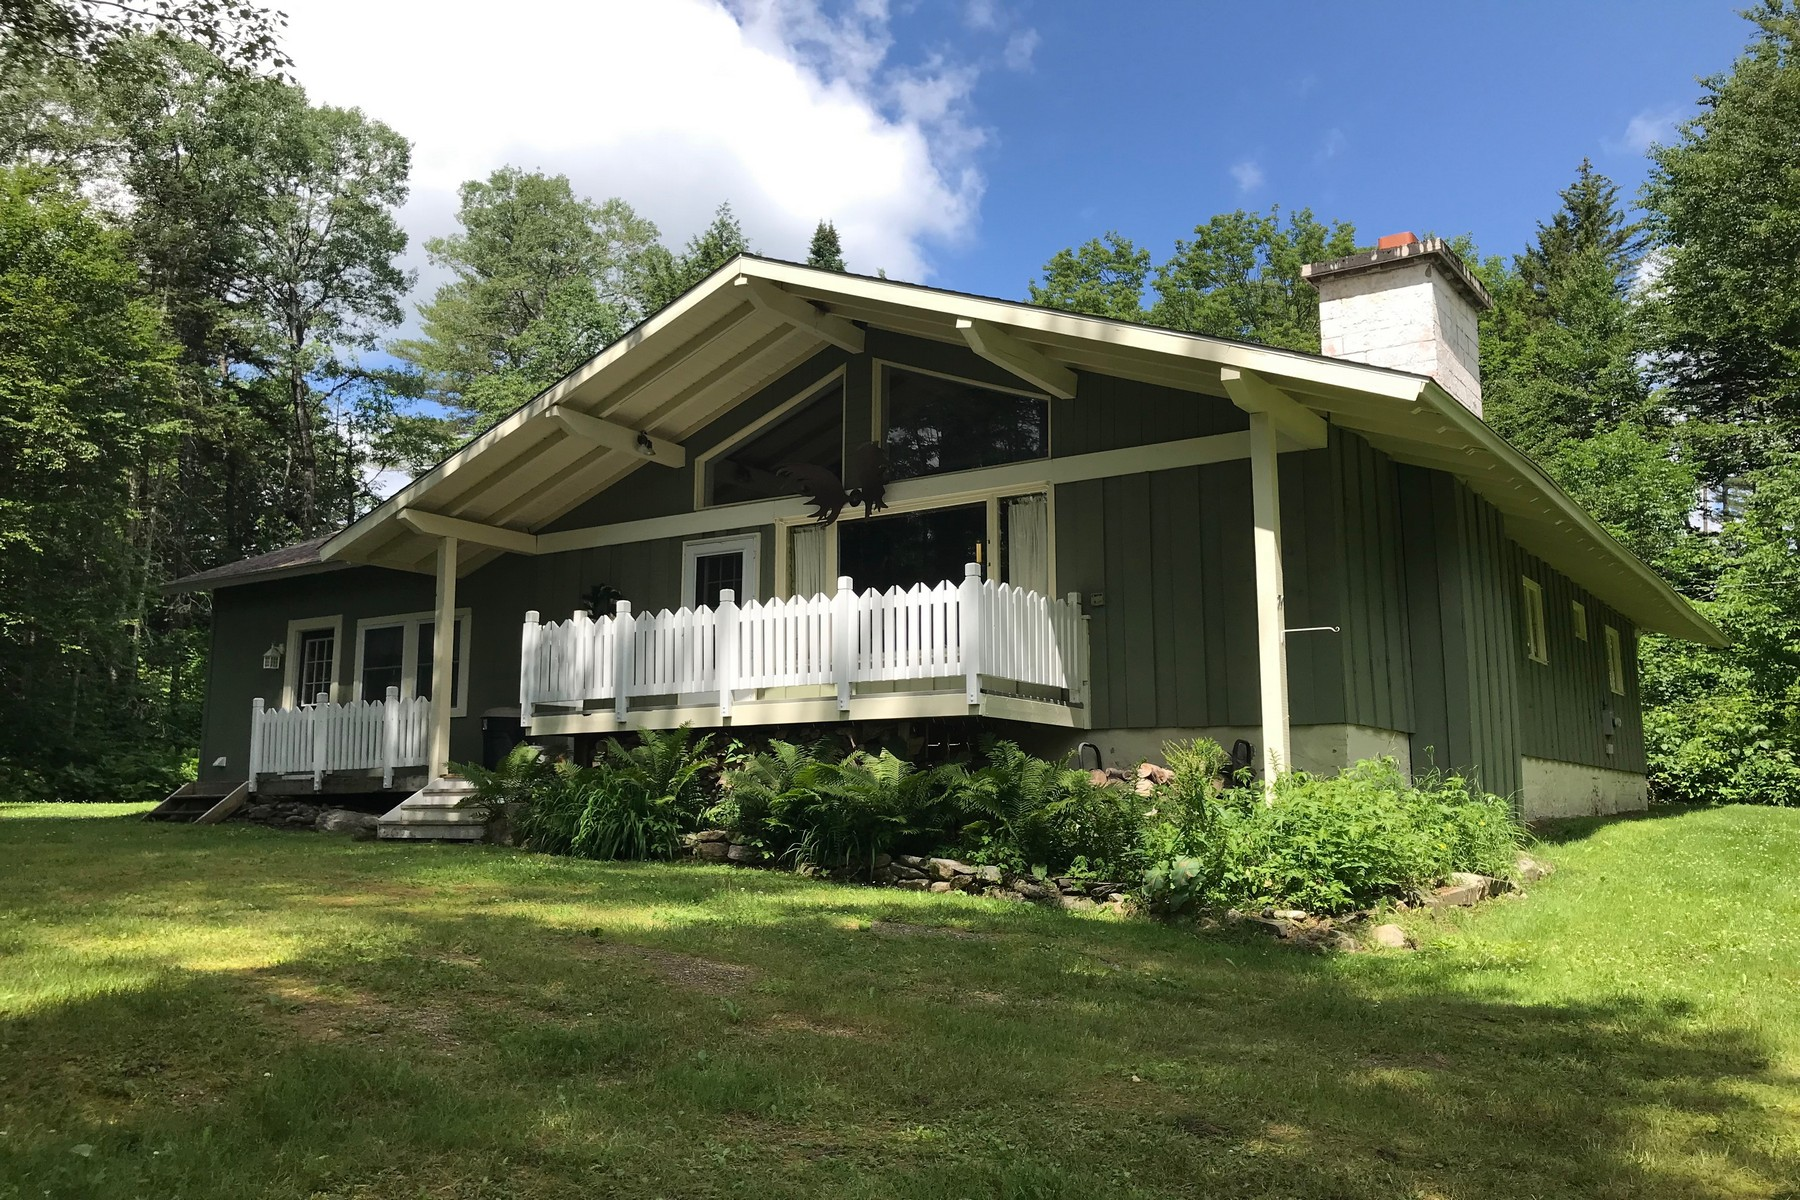 Single Family Homes for Sale at Country Chalet - One Level Living 71 Vacation Lodges Rd Londonderry, Vermont 05148 United States